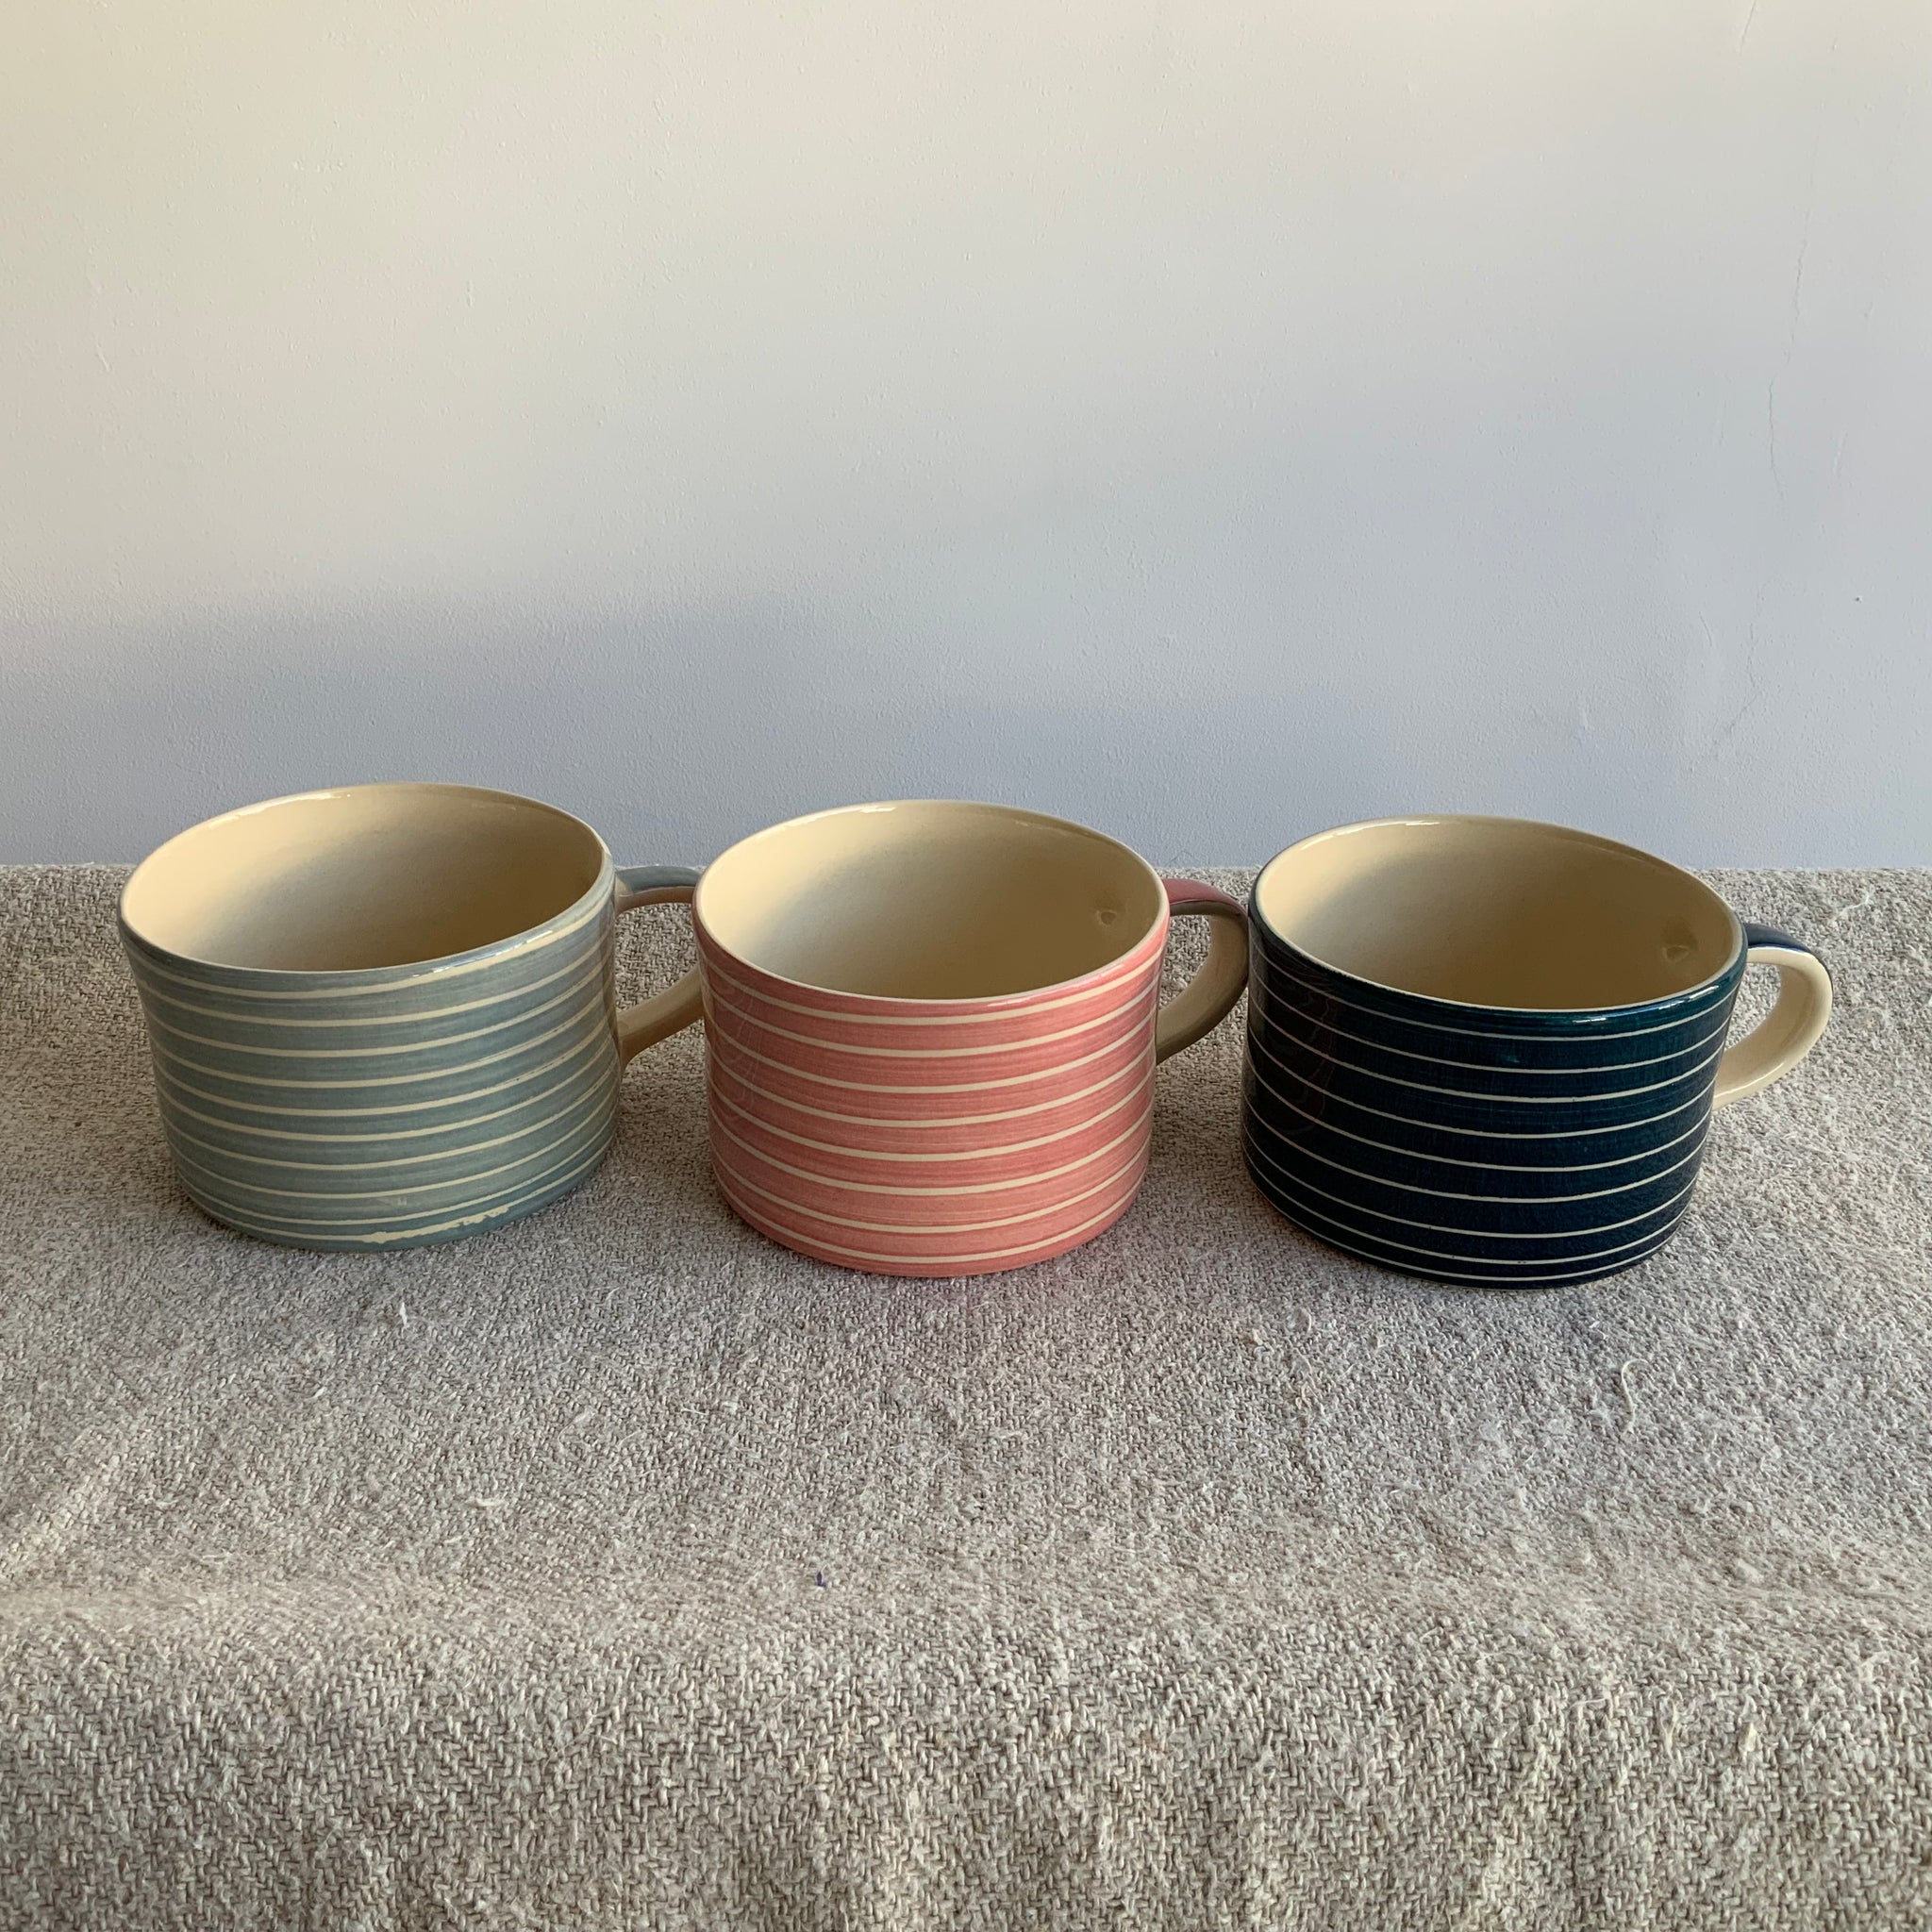 Dove Grey Musango sgraffito stripe mug (left)